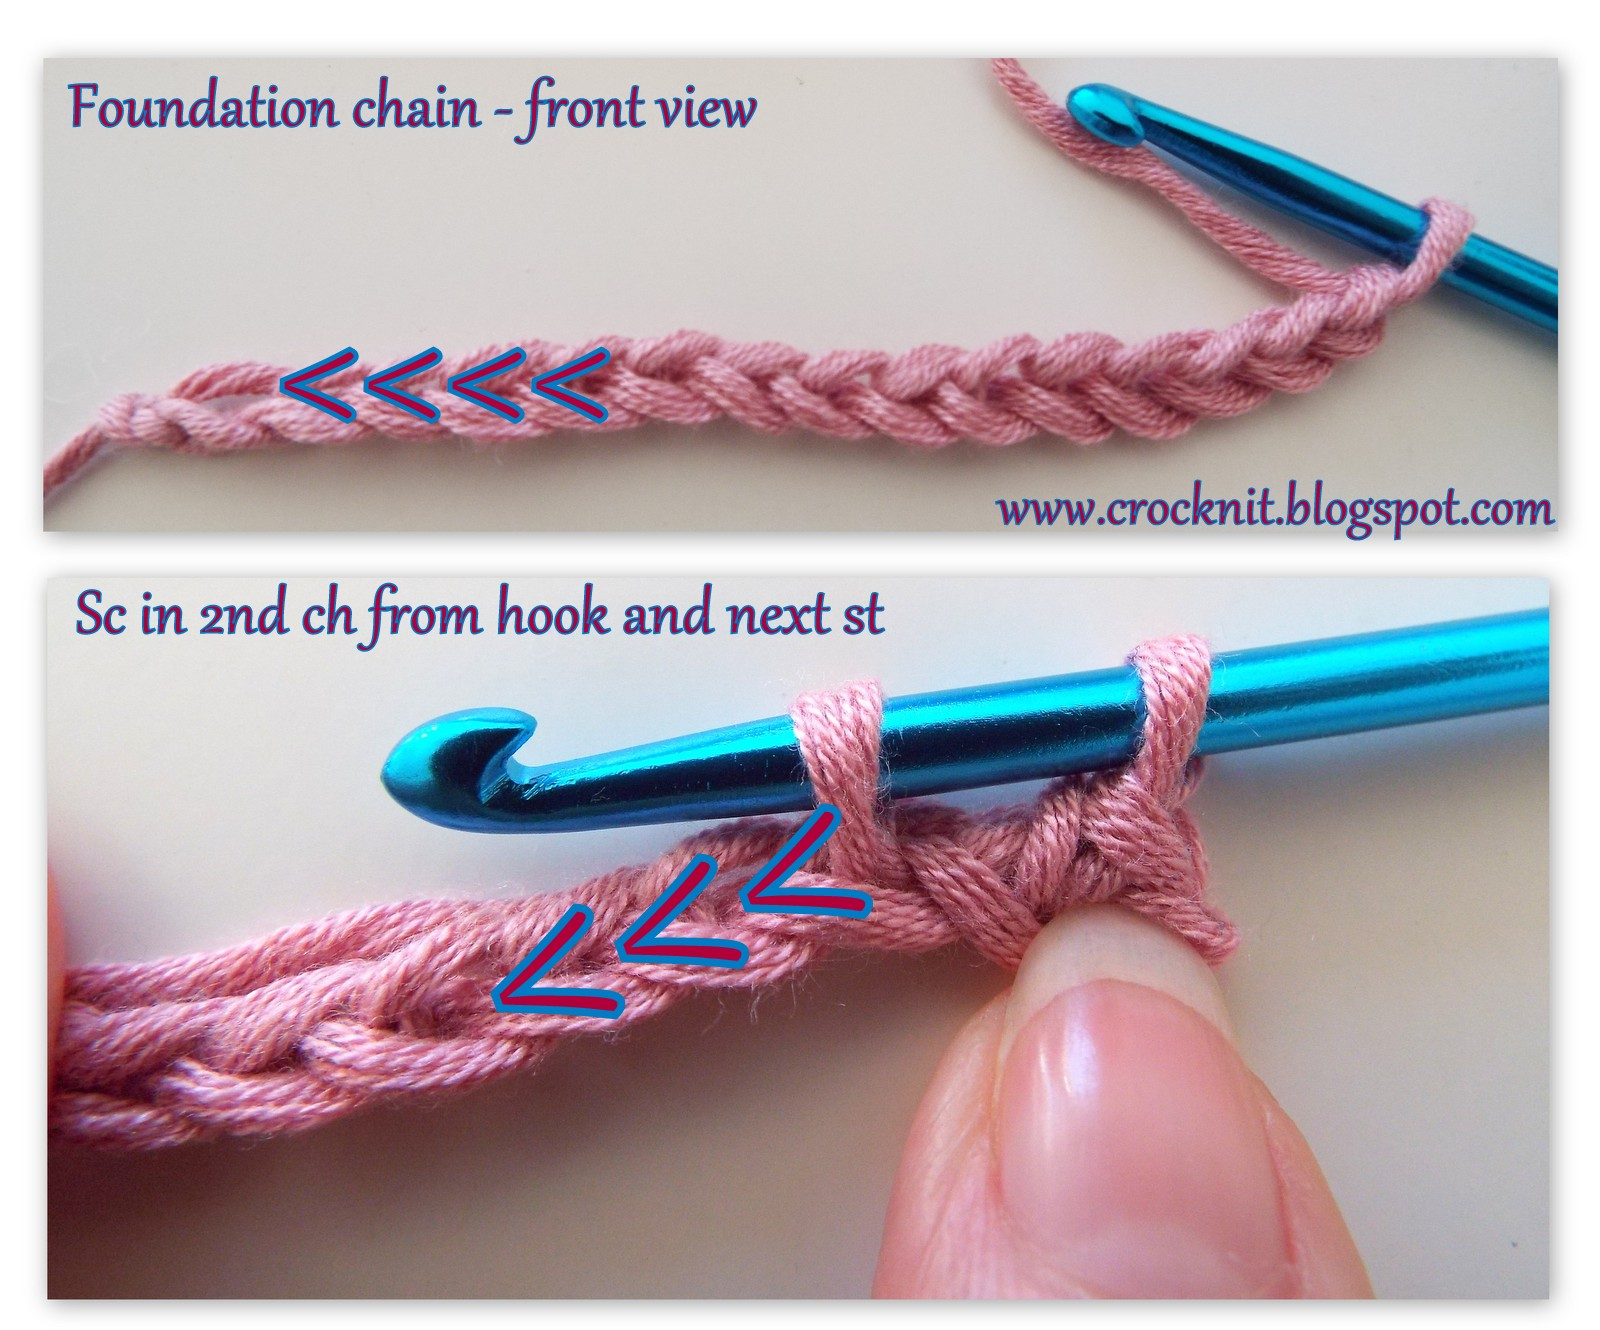 Microcknit Creations How To Crochet In Back Bump Tutorial